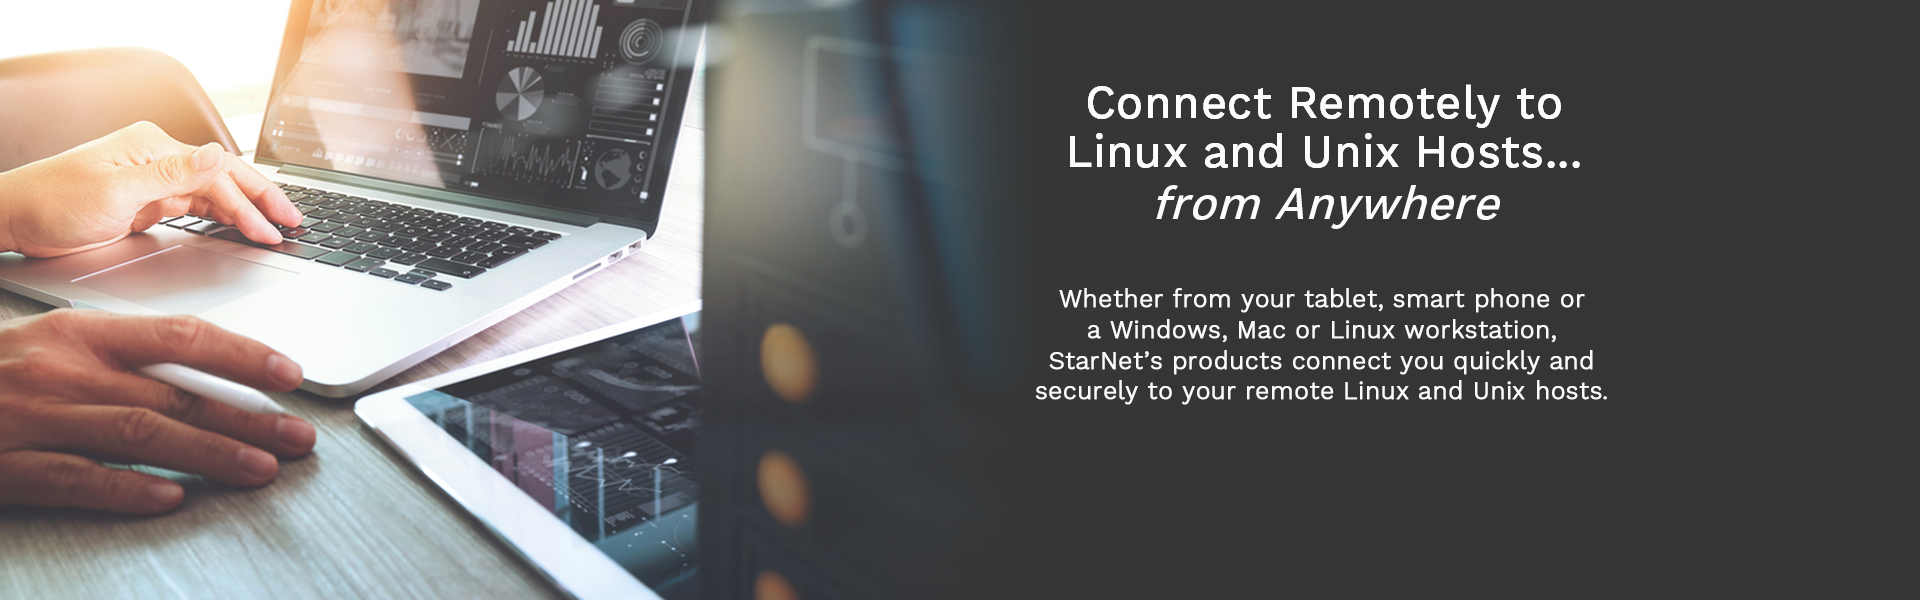 Connect Remotely